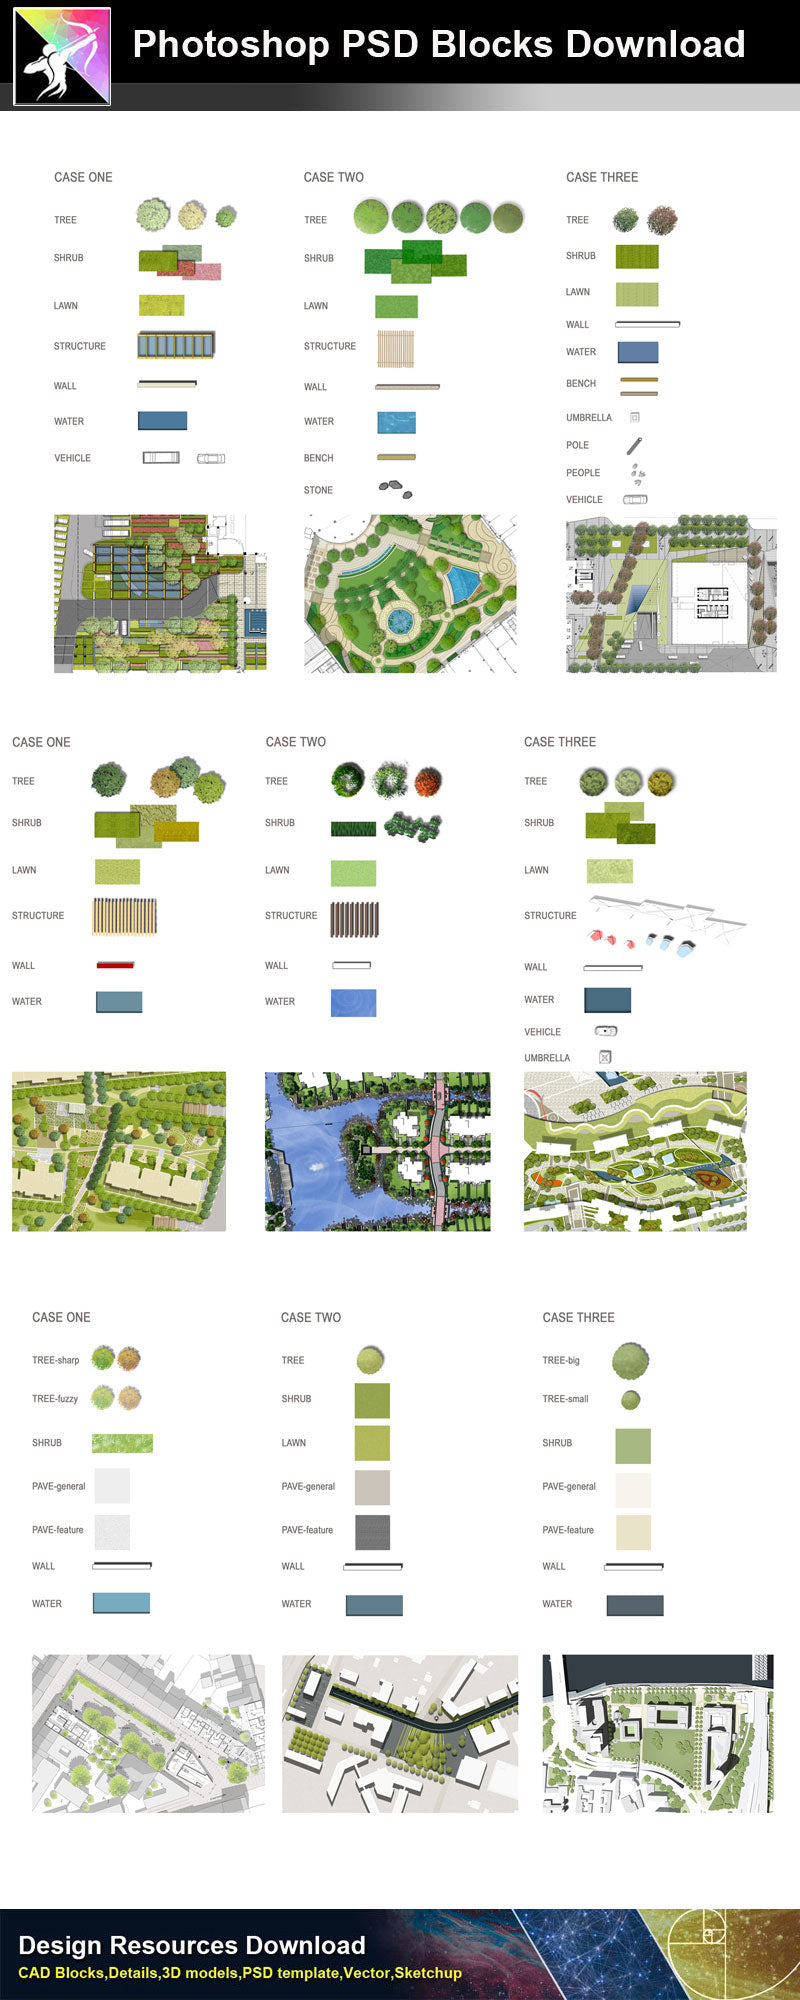 【Photoshop PSD Landscape Blocks】Landscape Plan,Elevation Blocks